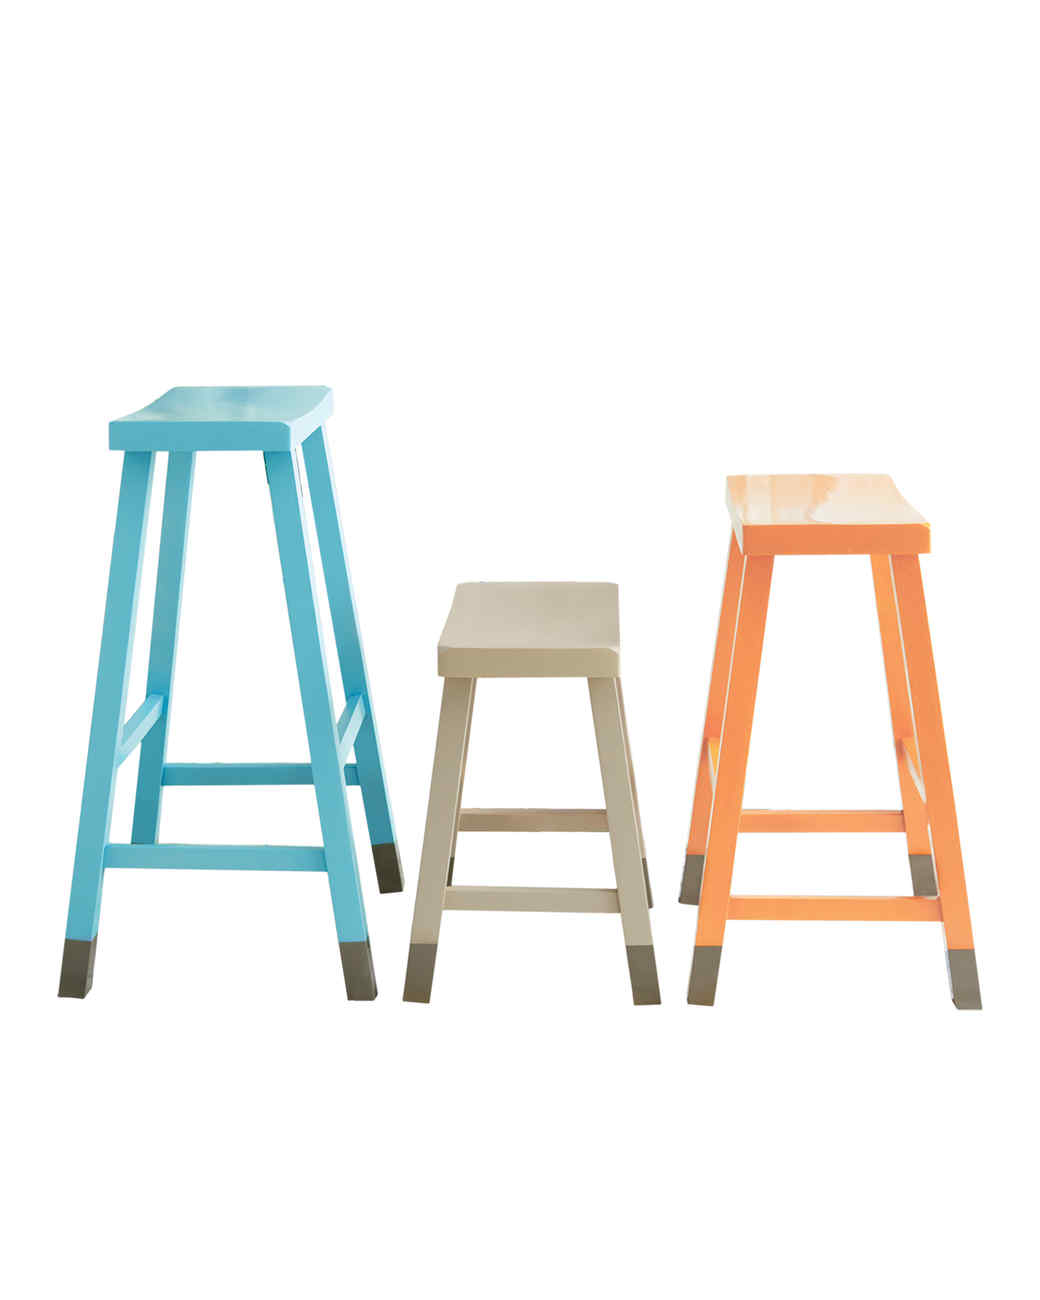 stools-finishing-touches-01-d106594-0815.jpg